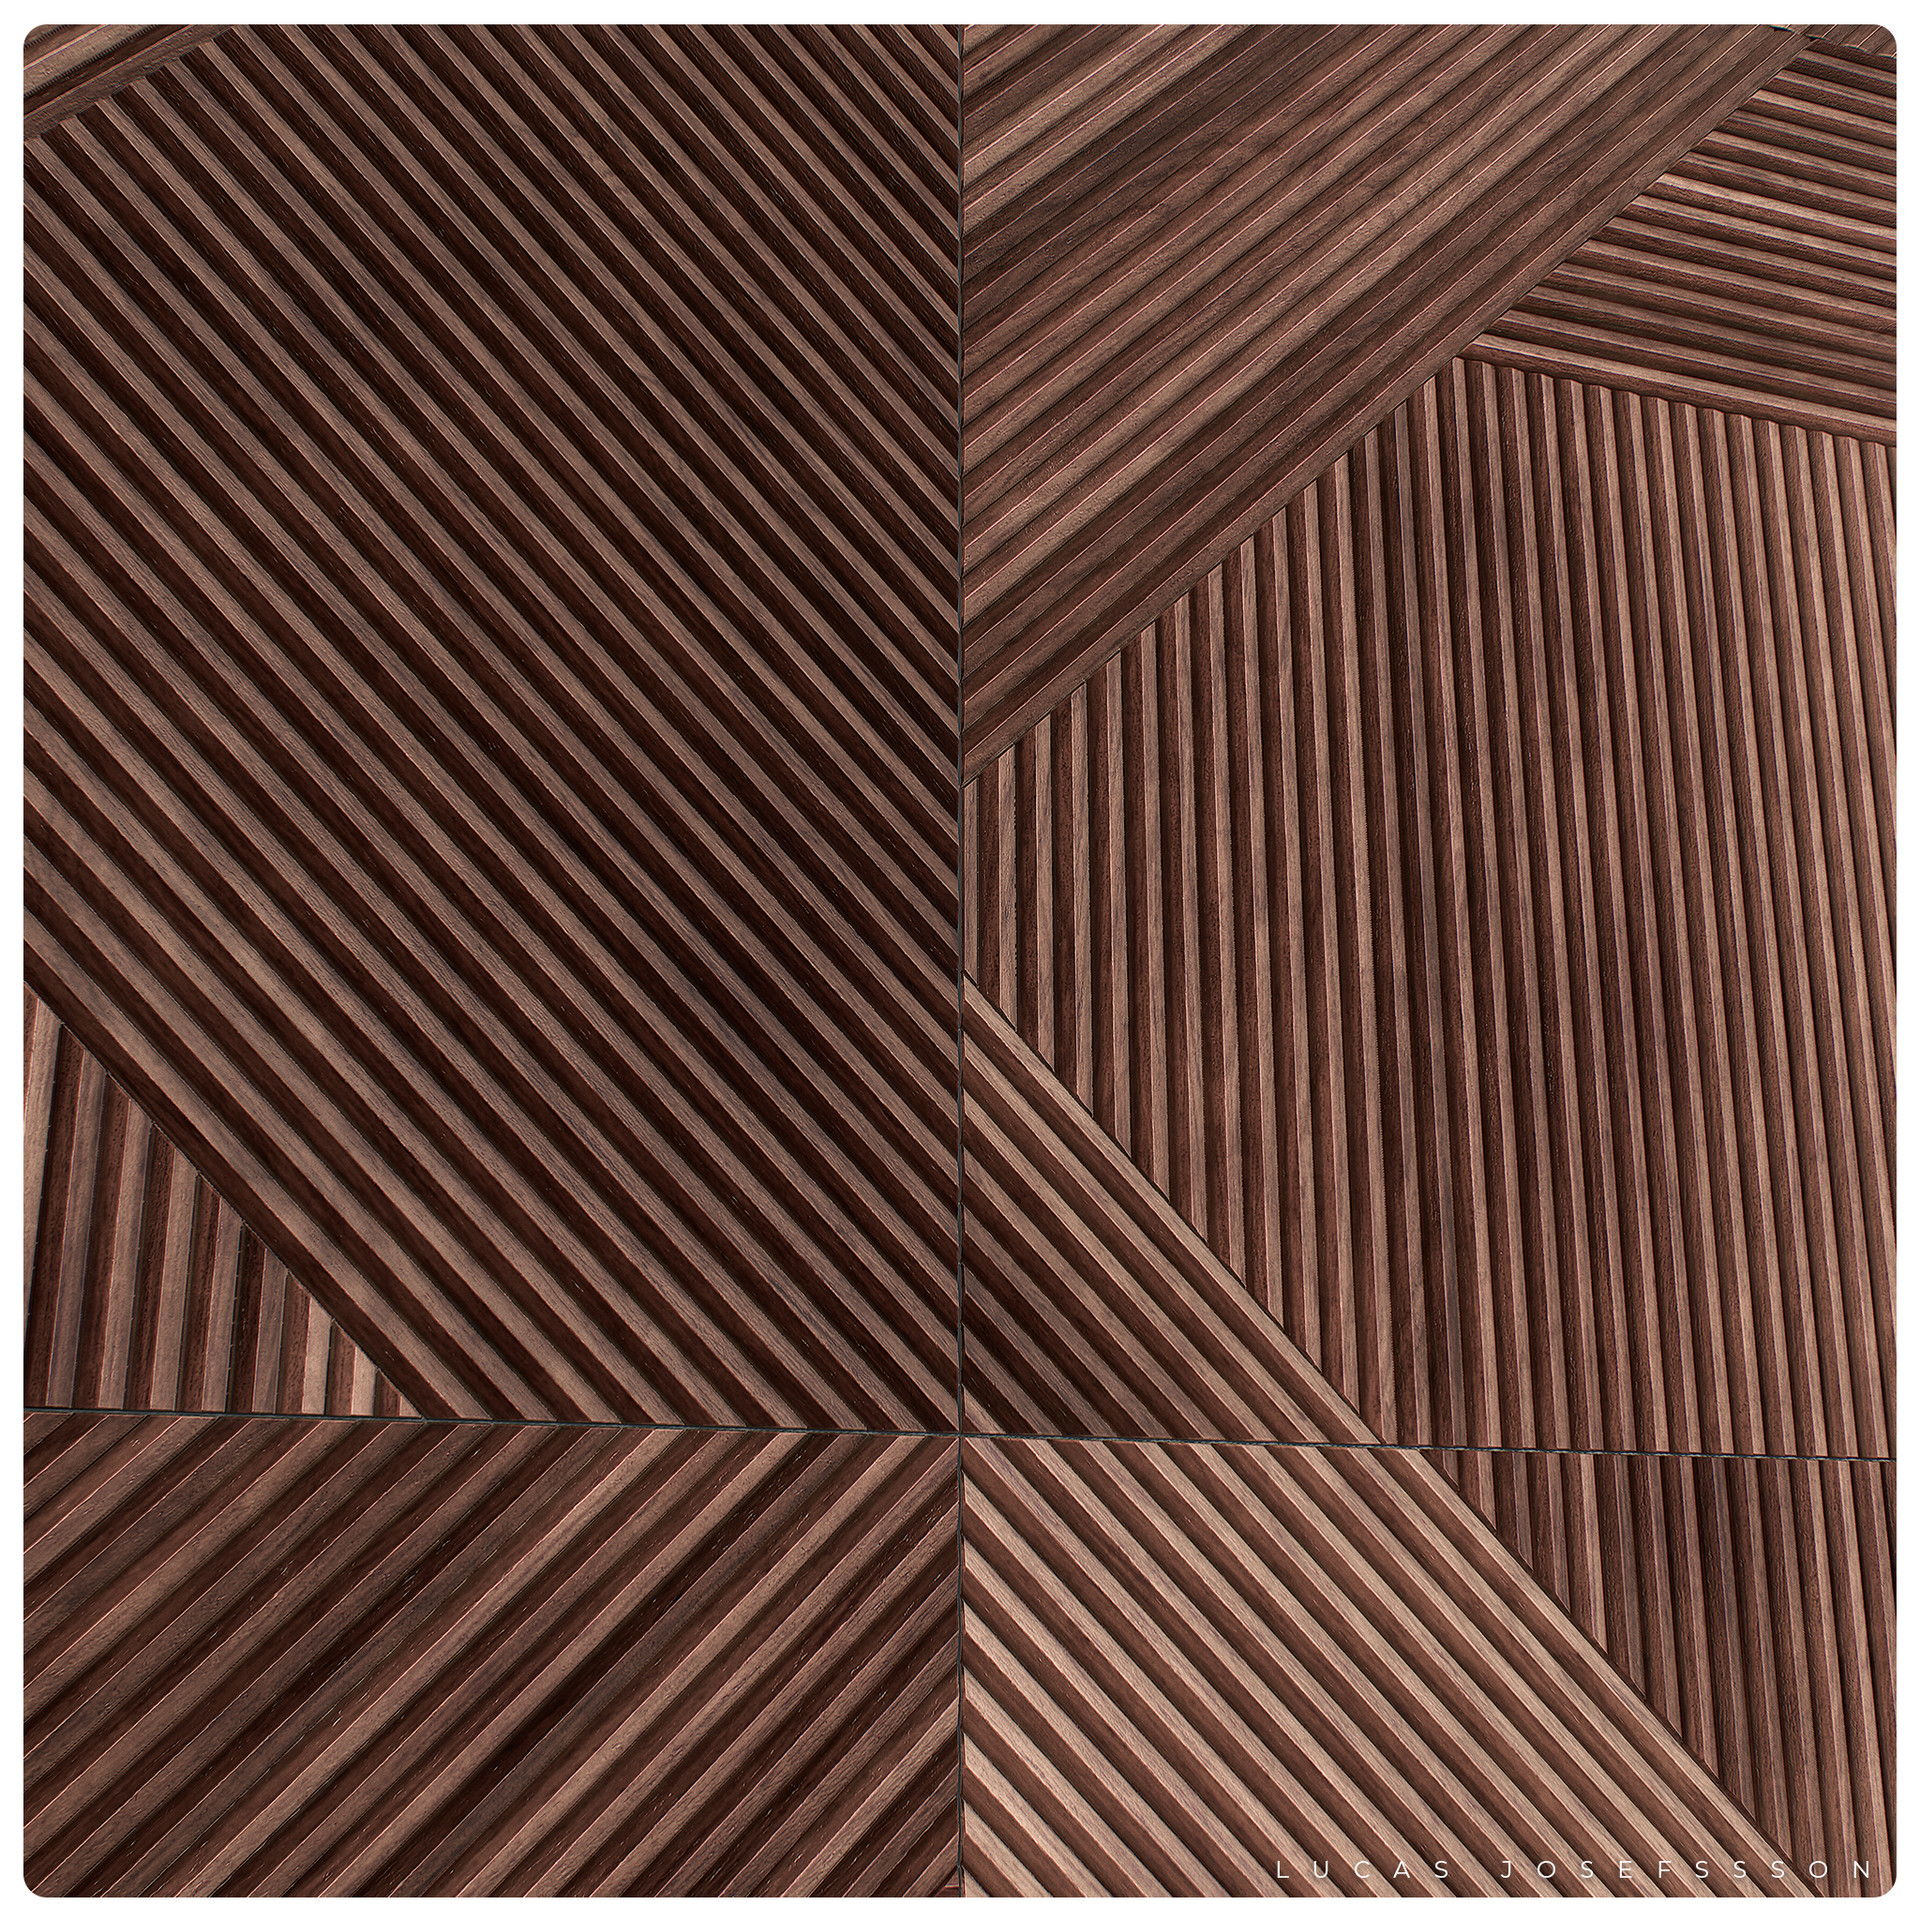 Lucas josefsson wood patterns 06